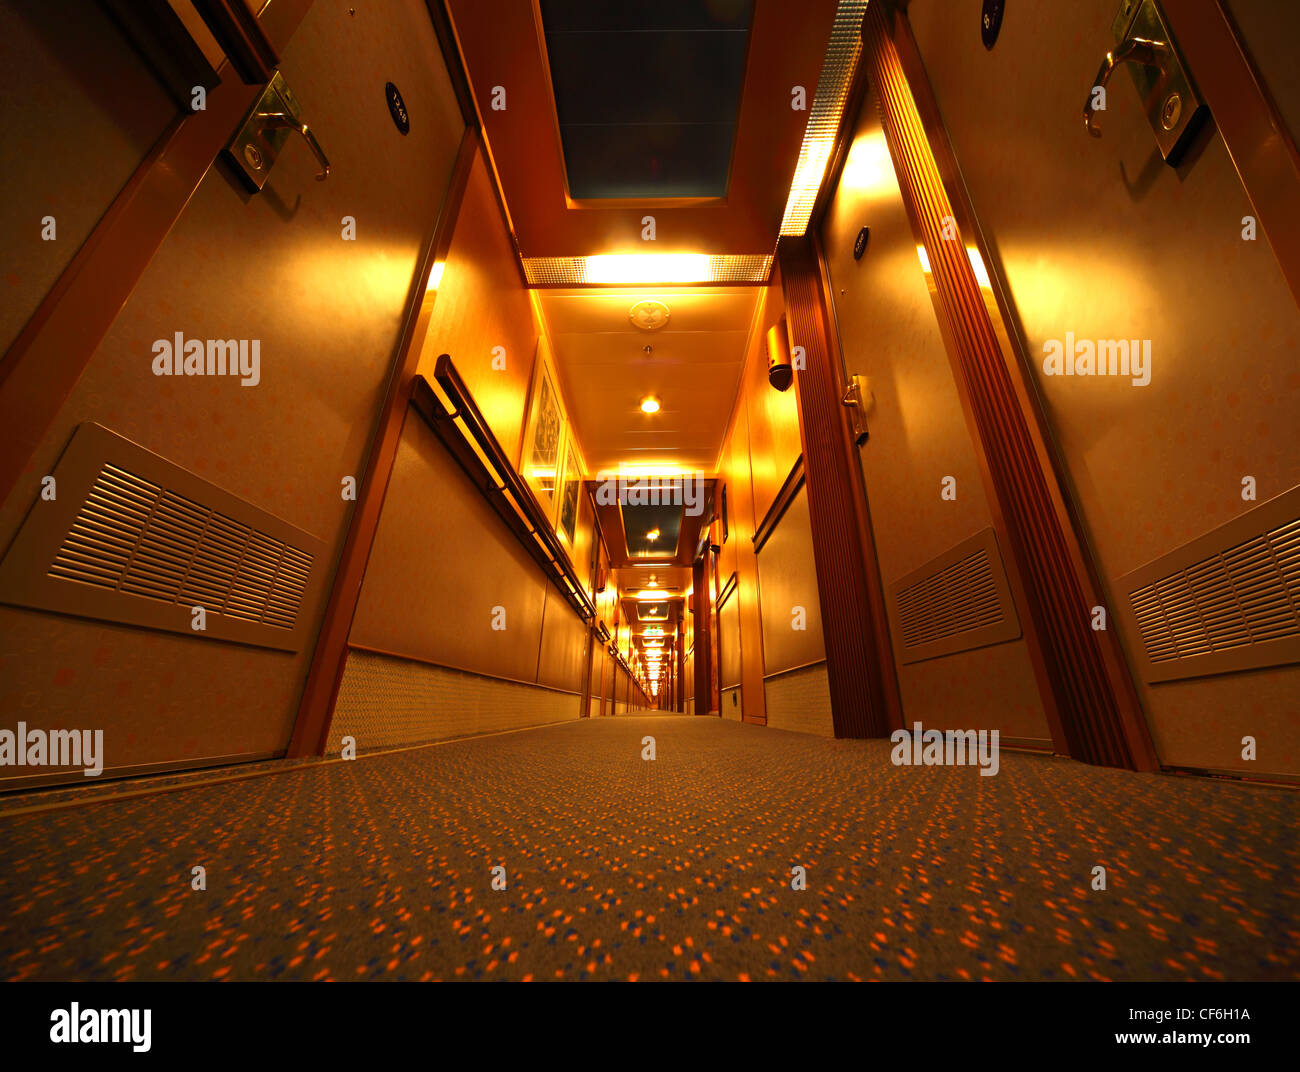 Narrow and long illuminated corridor with hotel rooms in cruise ship - Stock Image